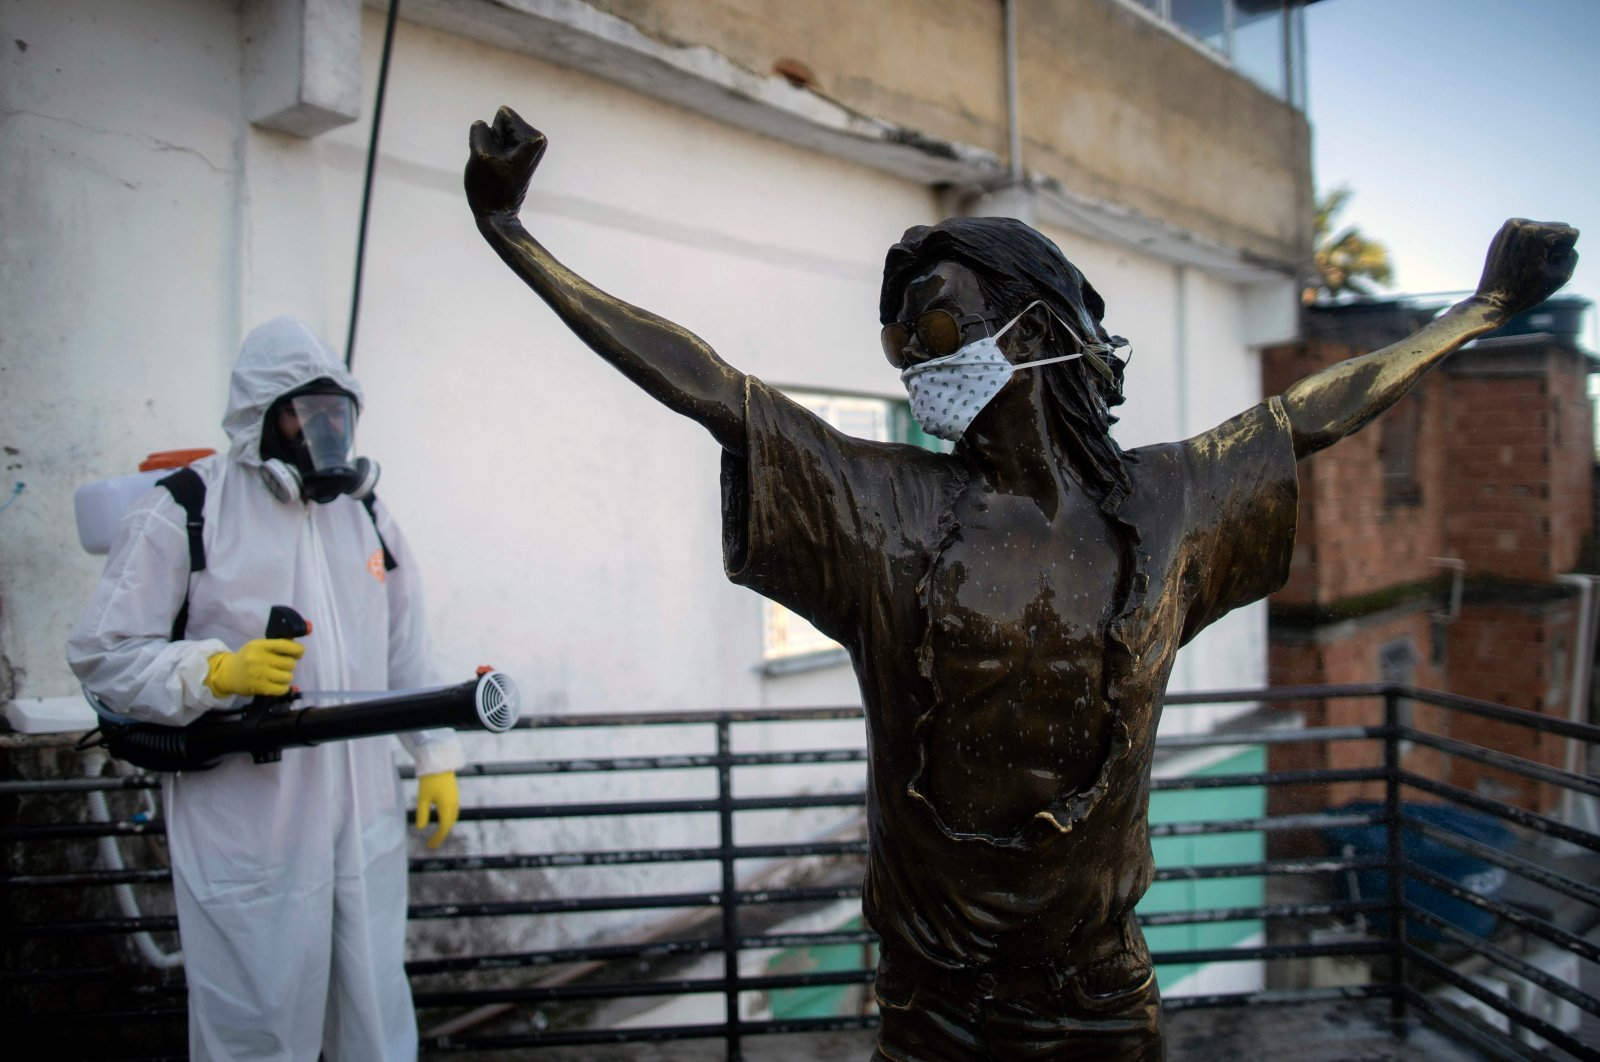 A volunteer disinfects the statue of US singer Michael Jackson, at the Santa Marta favela in Rio de Janeiro, Brazil, during the COVID-19 coronavirus pandemic on April 20, 2020. (AFP Photo)